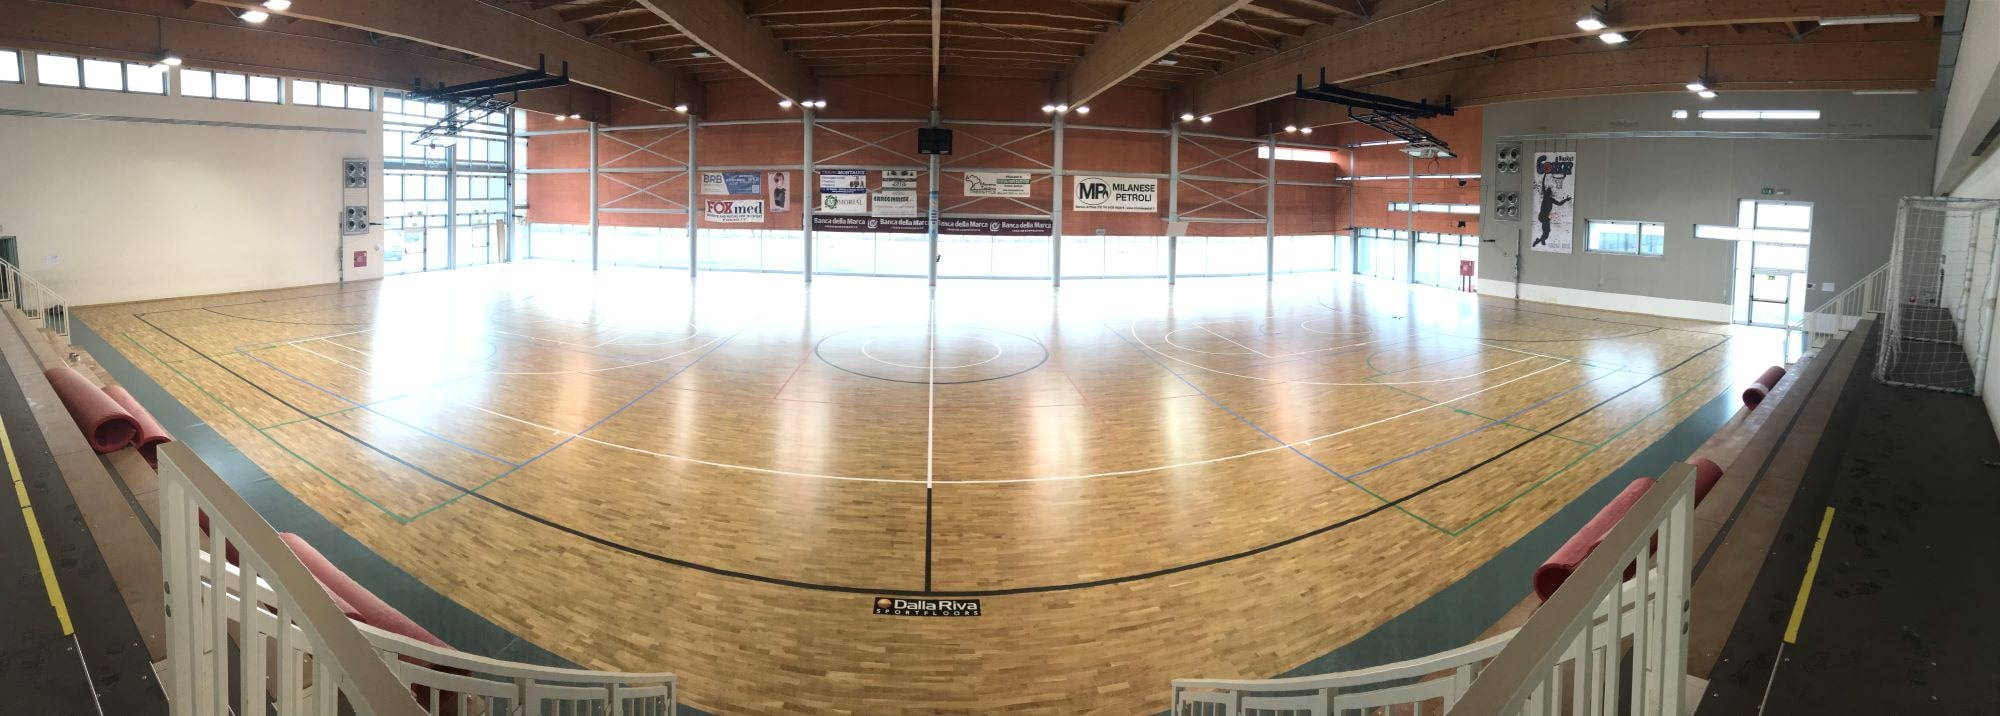 1280 square meters of robust oak parquet